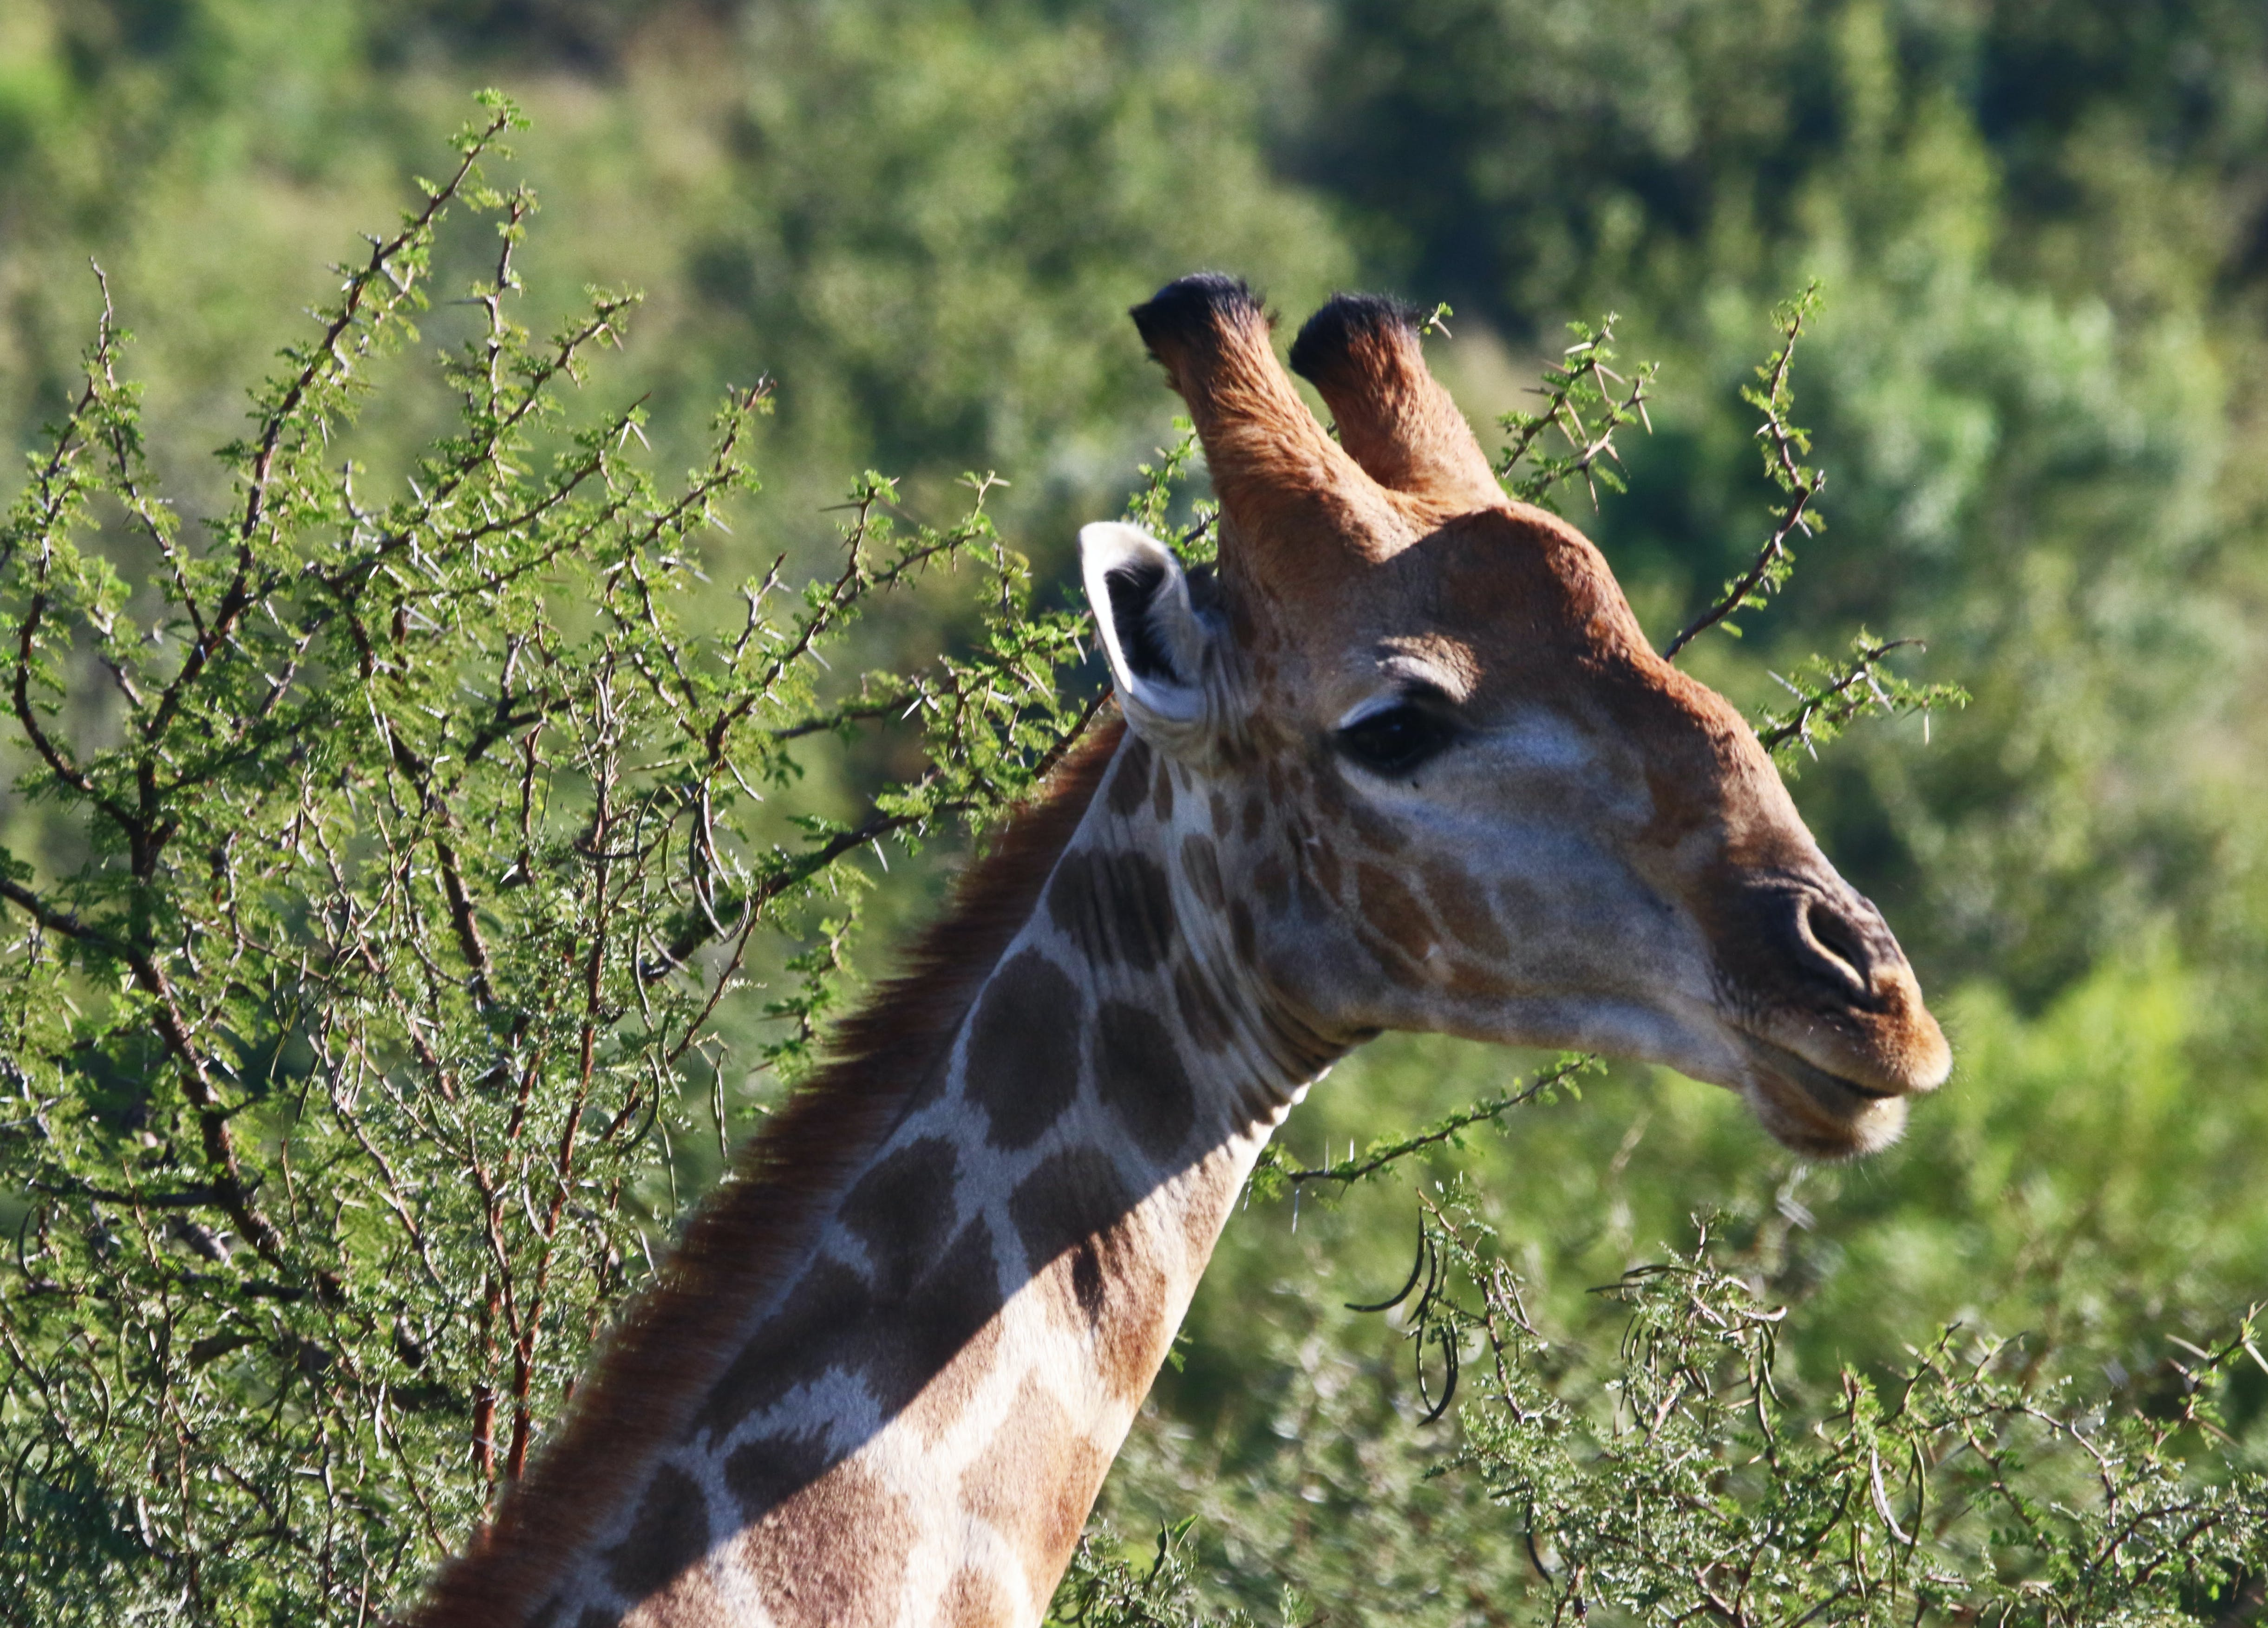 Close-Up Photography of Giraffe Head